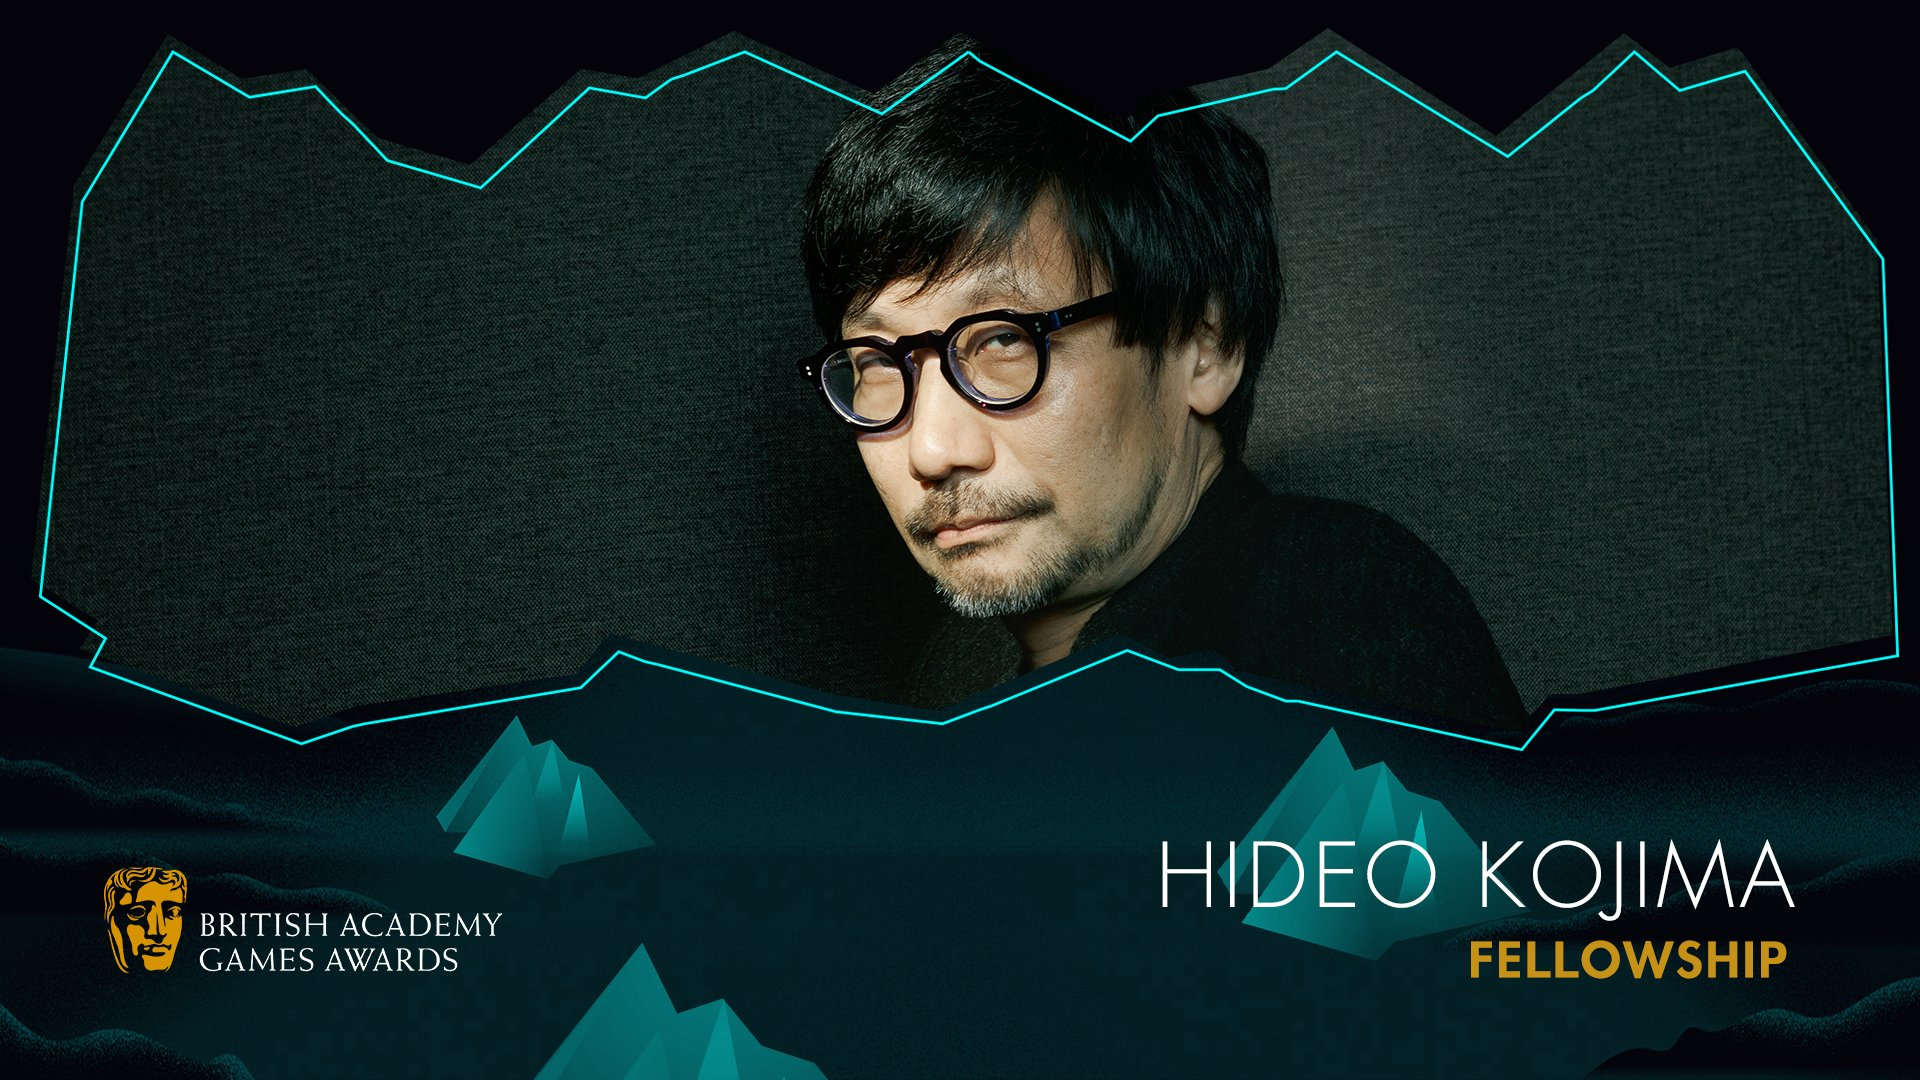 Hideo Kojima Bafta Games Awards 2020